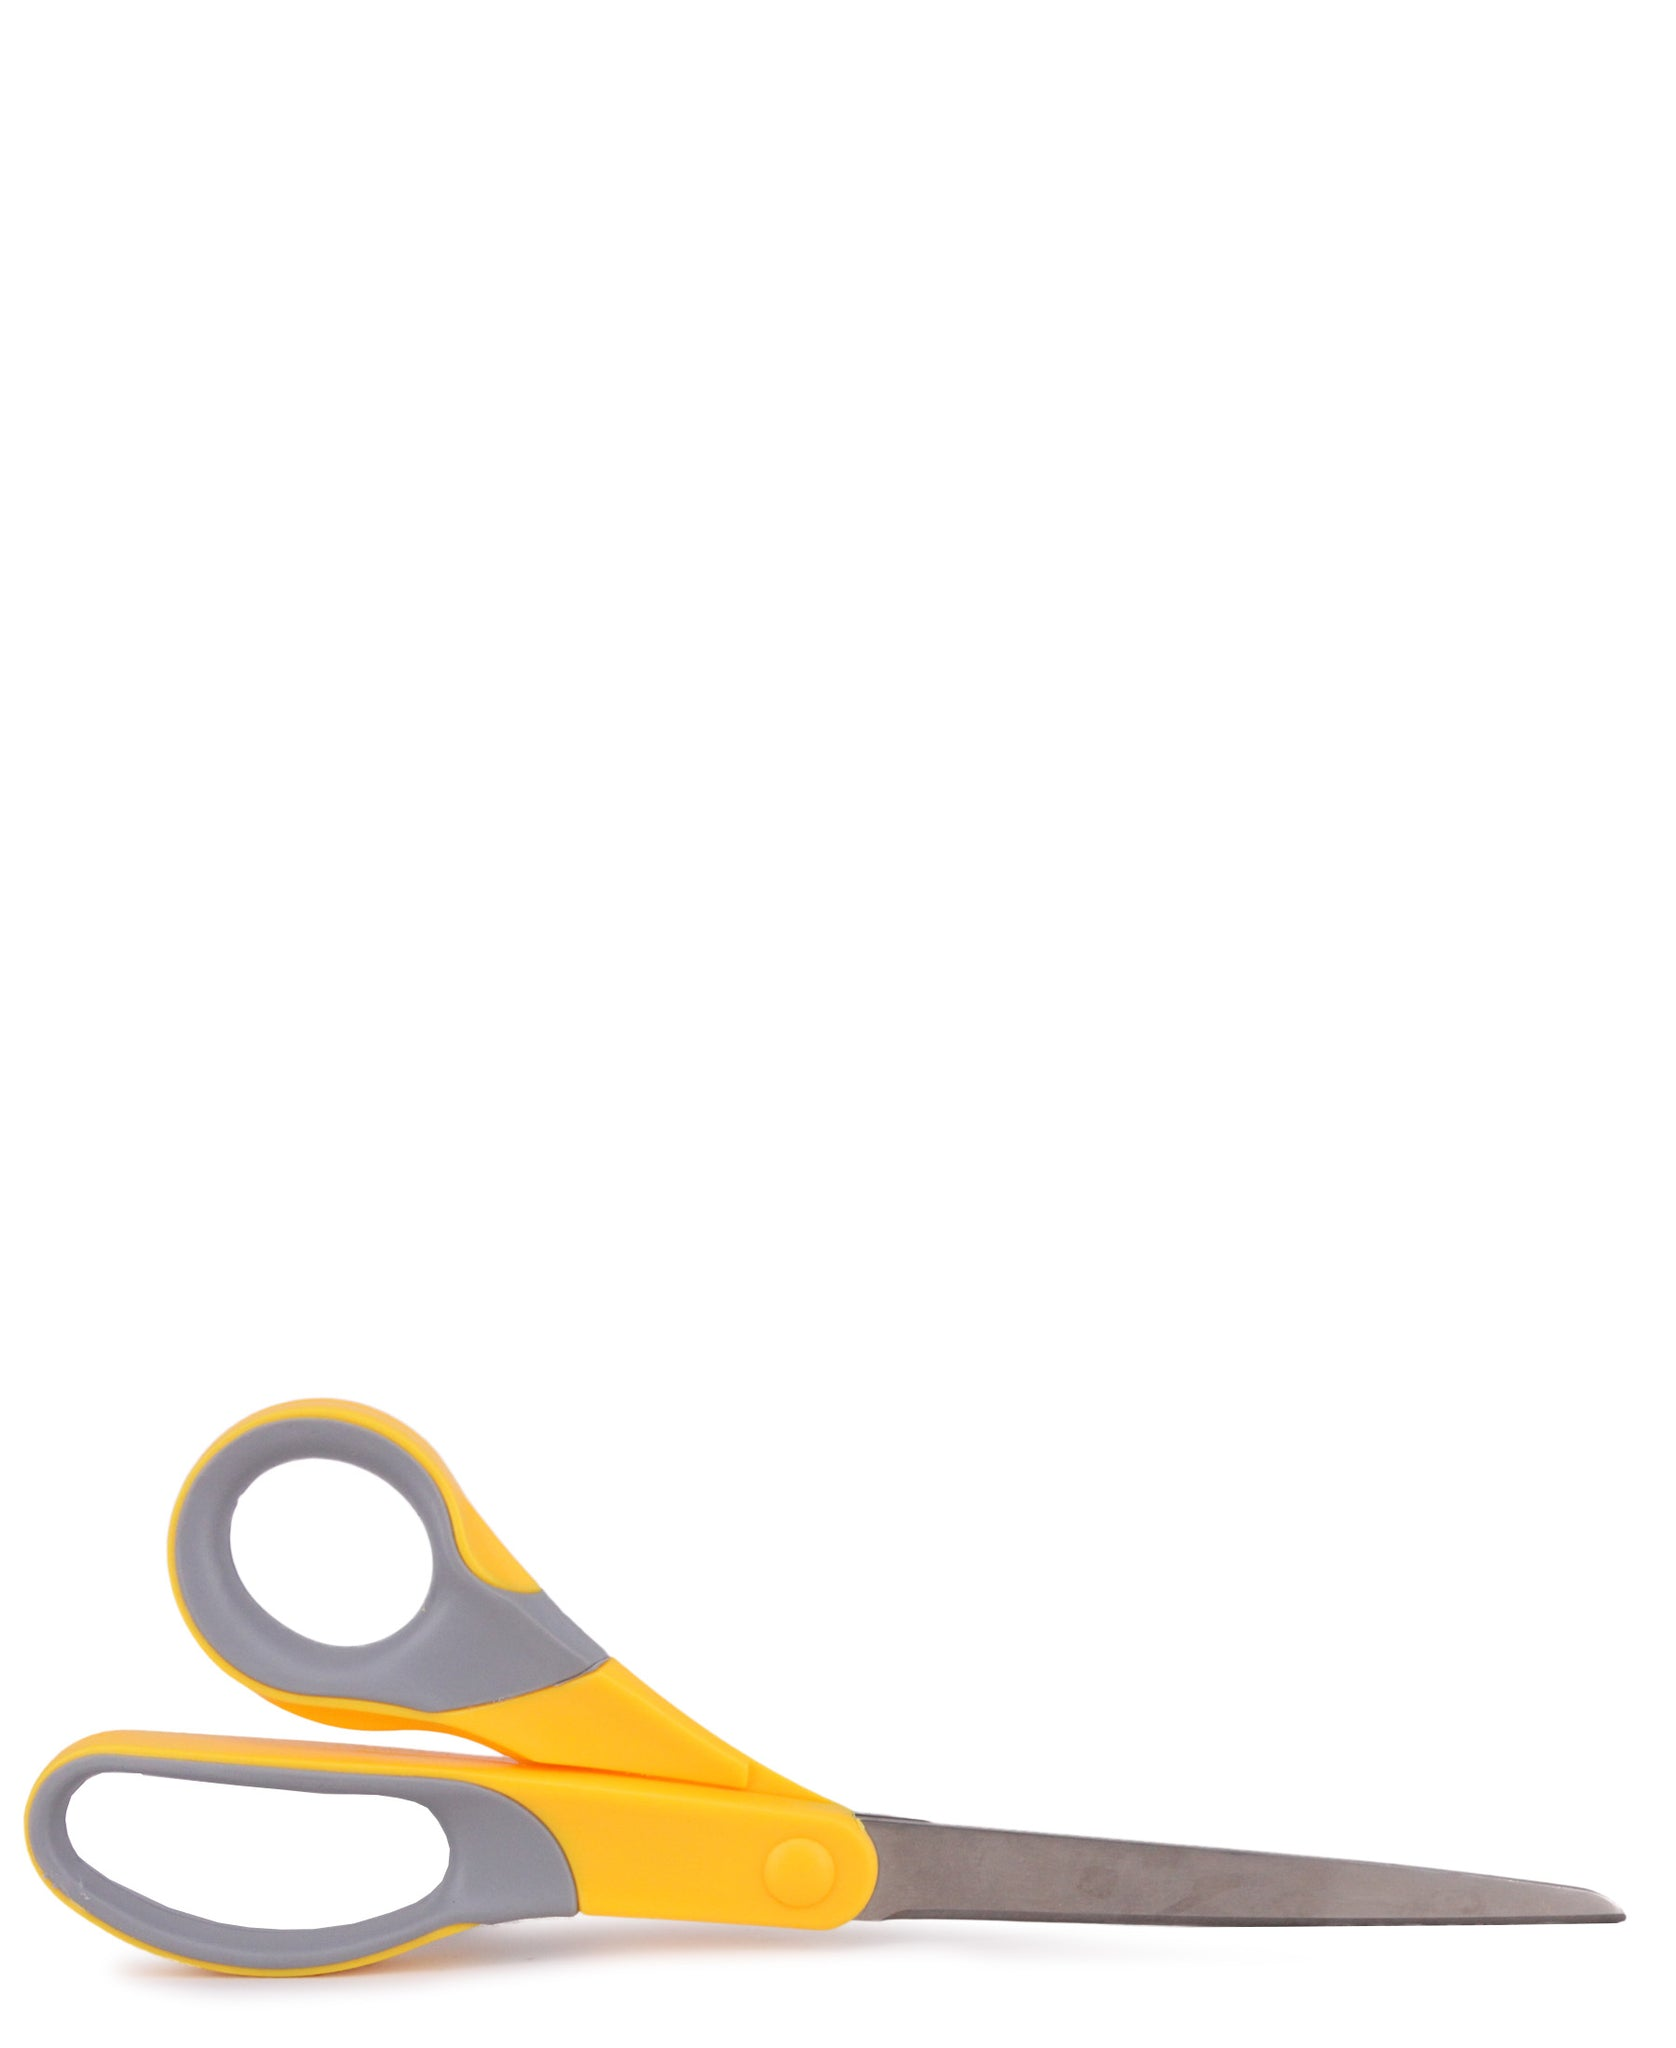 Dressmakers Scissors - Yellow